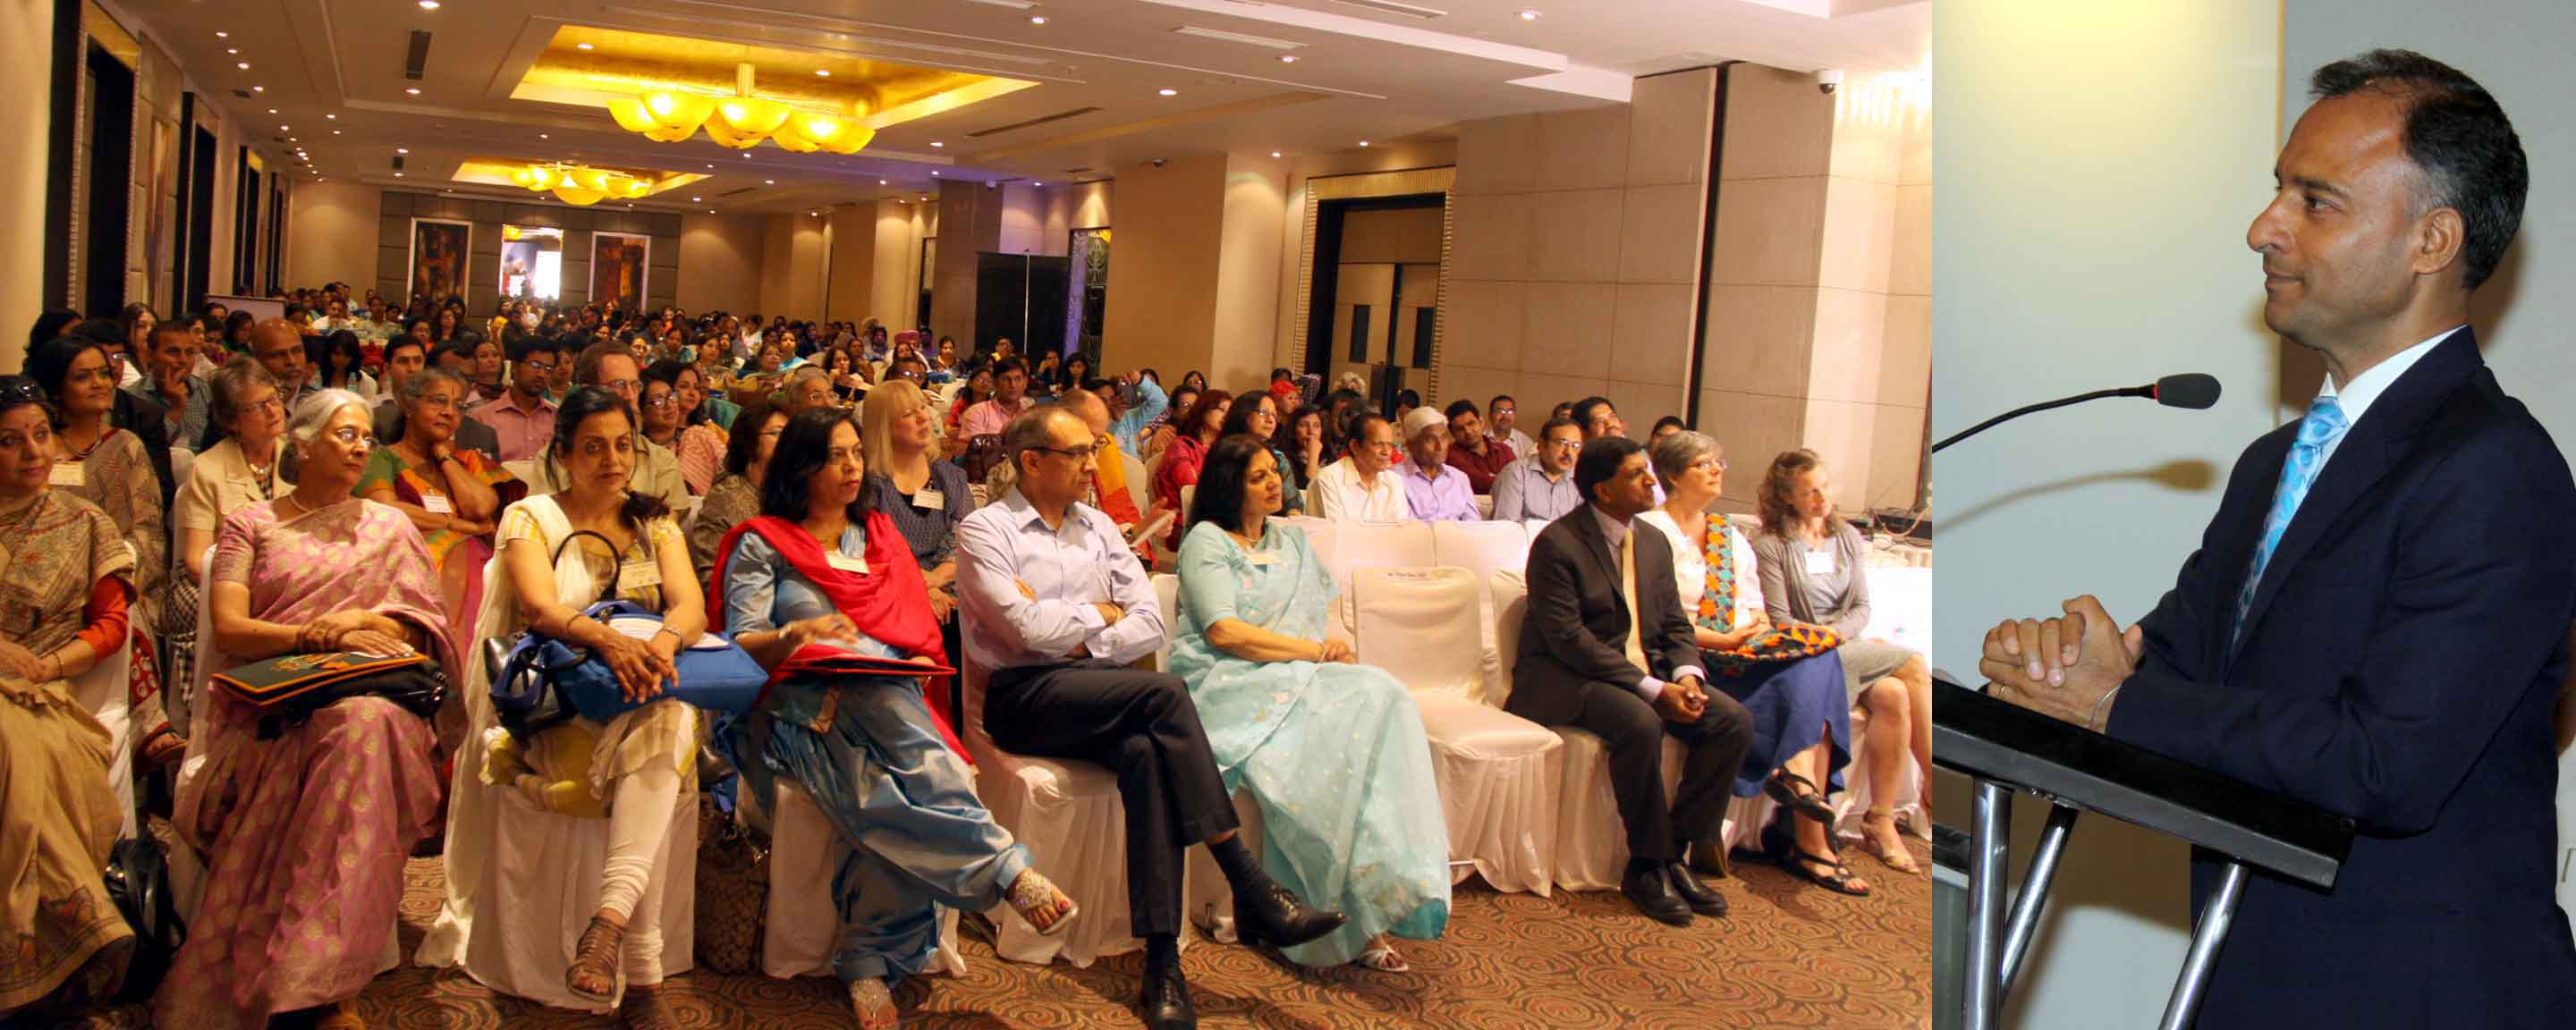 The Adviser to the Administrator, UT, Chandigarh, Mr. Vijay Dev addressing the audience at the inauguration of �TESOL ACADEMY INDIA-2015� Changing Classrooms, Supporting Teachers at Hotel Park Plaza, Sector-17, Chandigarh on Friday, April 24, 2015.